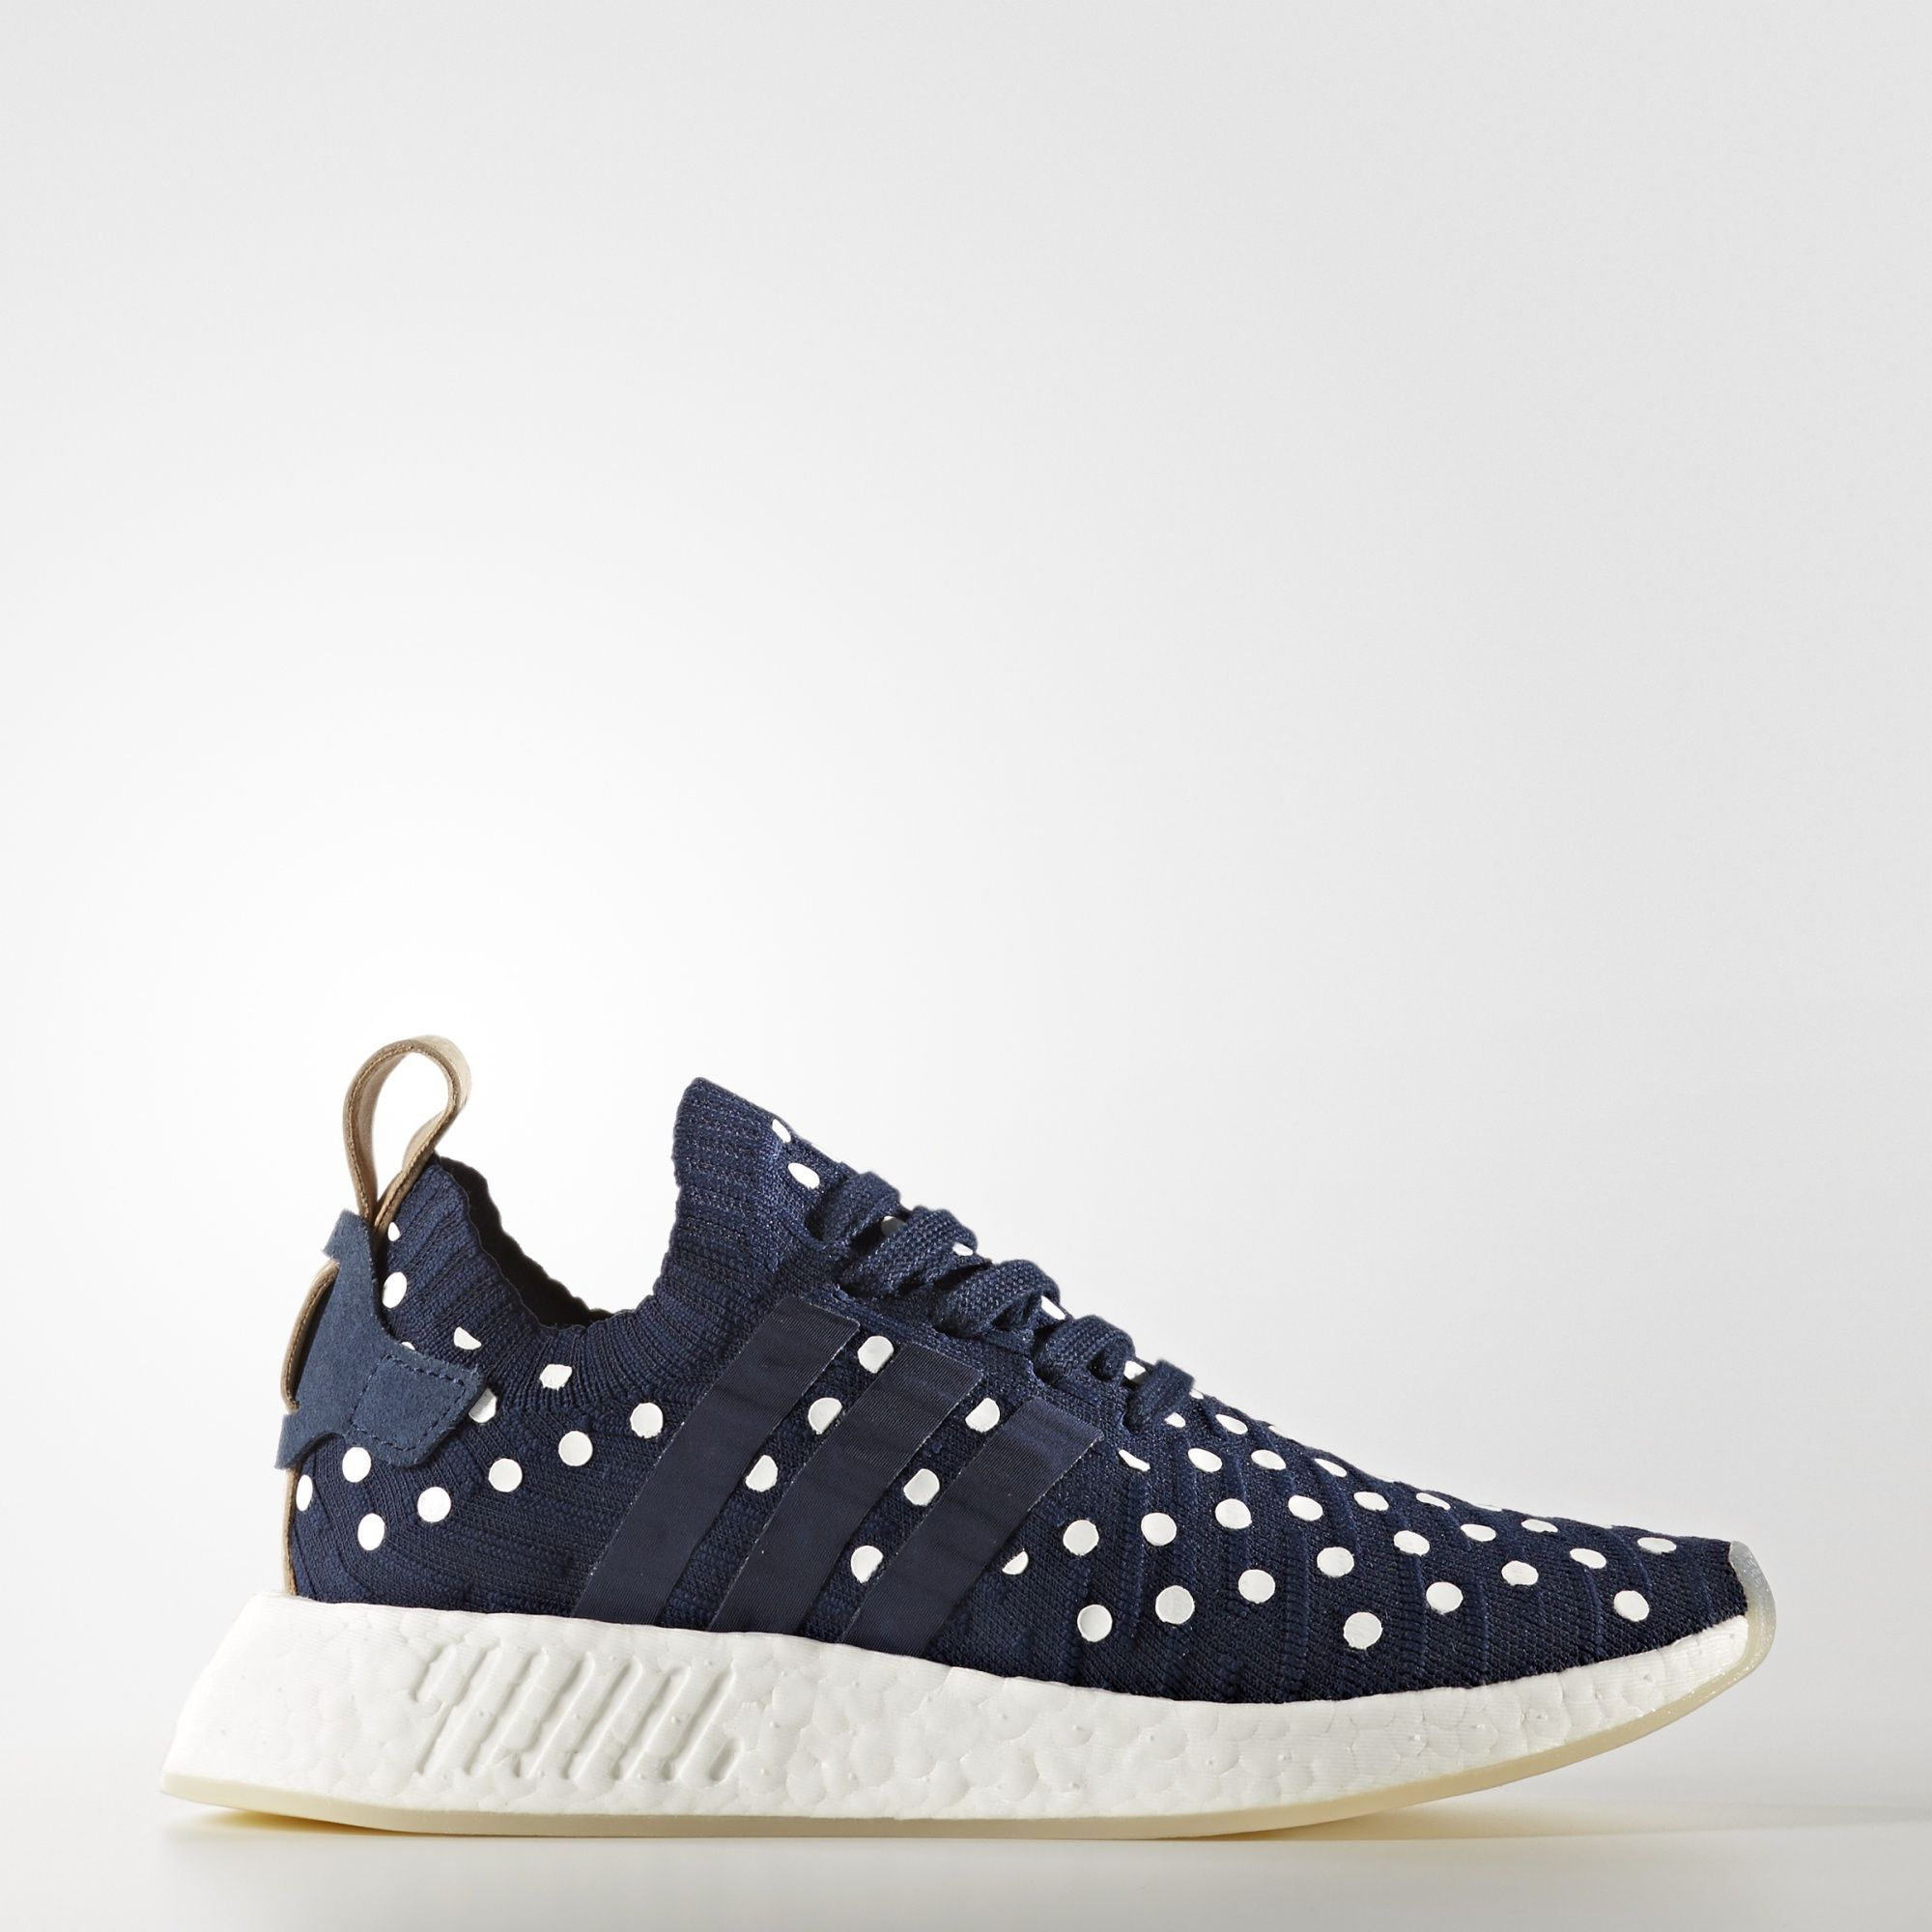 adidas - NMD_R2 Primeknit Shoes